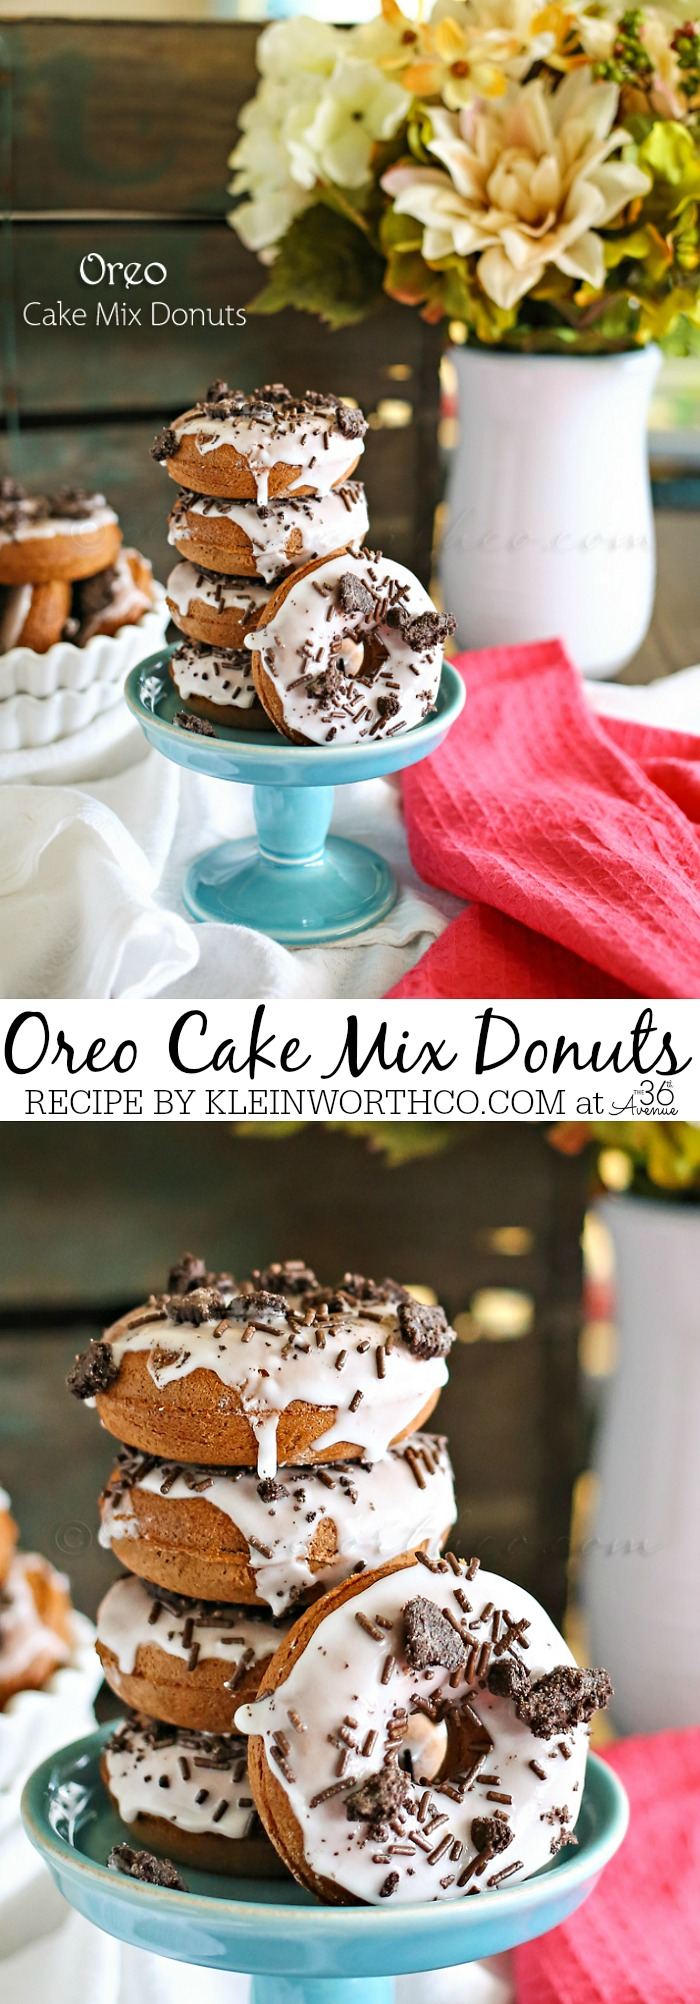 Homemade Donut Recipe - These donuts are made from cake mix and topped with a cream glaze and crumbled Oreo Cookies.